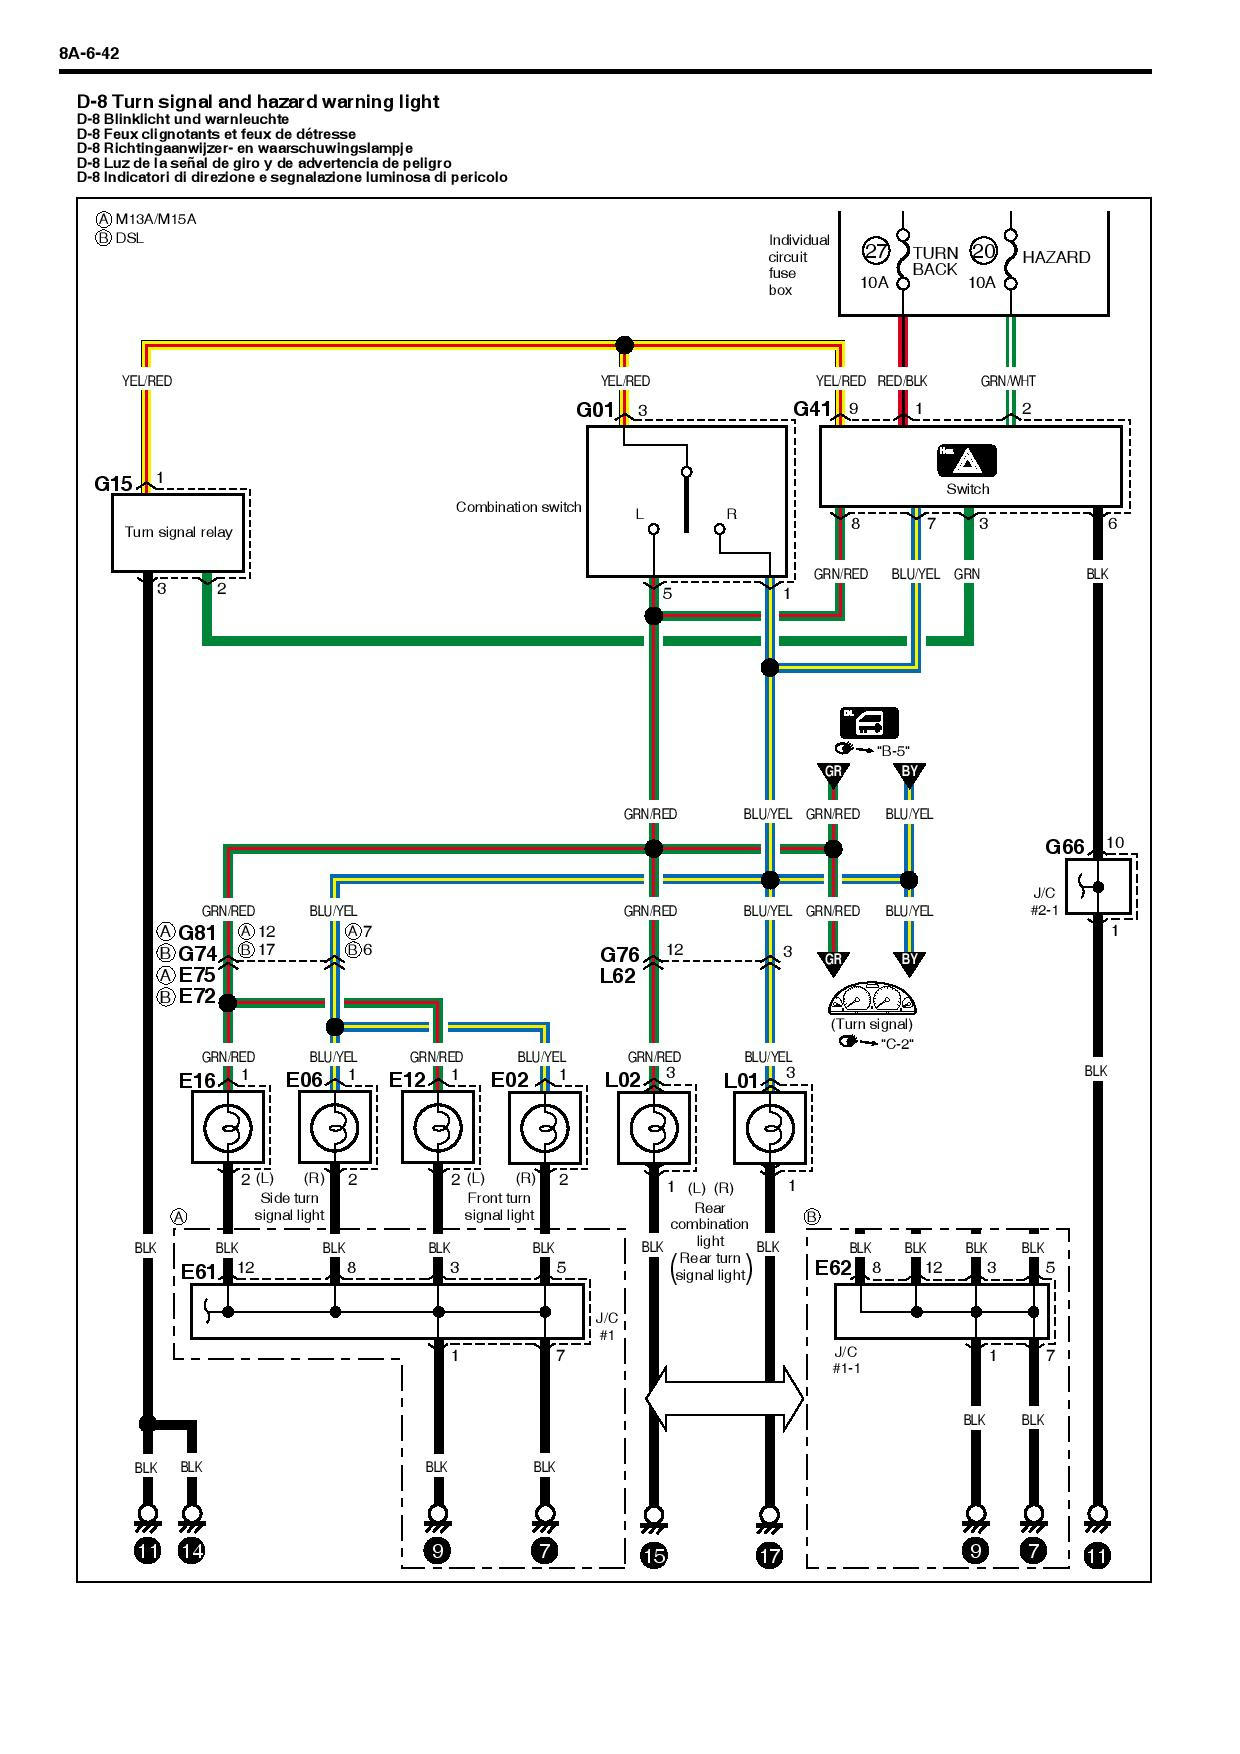 Tg Oibkvphv Xn Paxiyyqoz furthermore For Car Alarm Wiring Diagram Schematics In Diagrams Free Download furthermore Hqdefault besides Parsin in addition En Grandvitara Blok Salon X. on suzuki grand vitara fuse box location